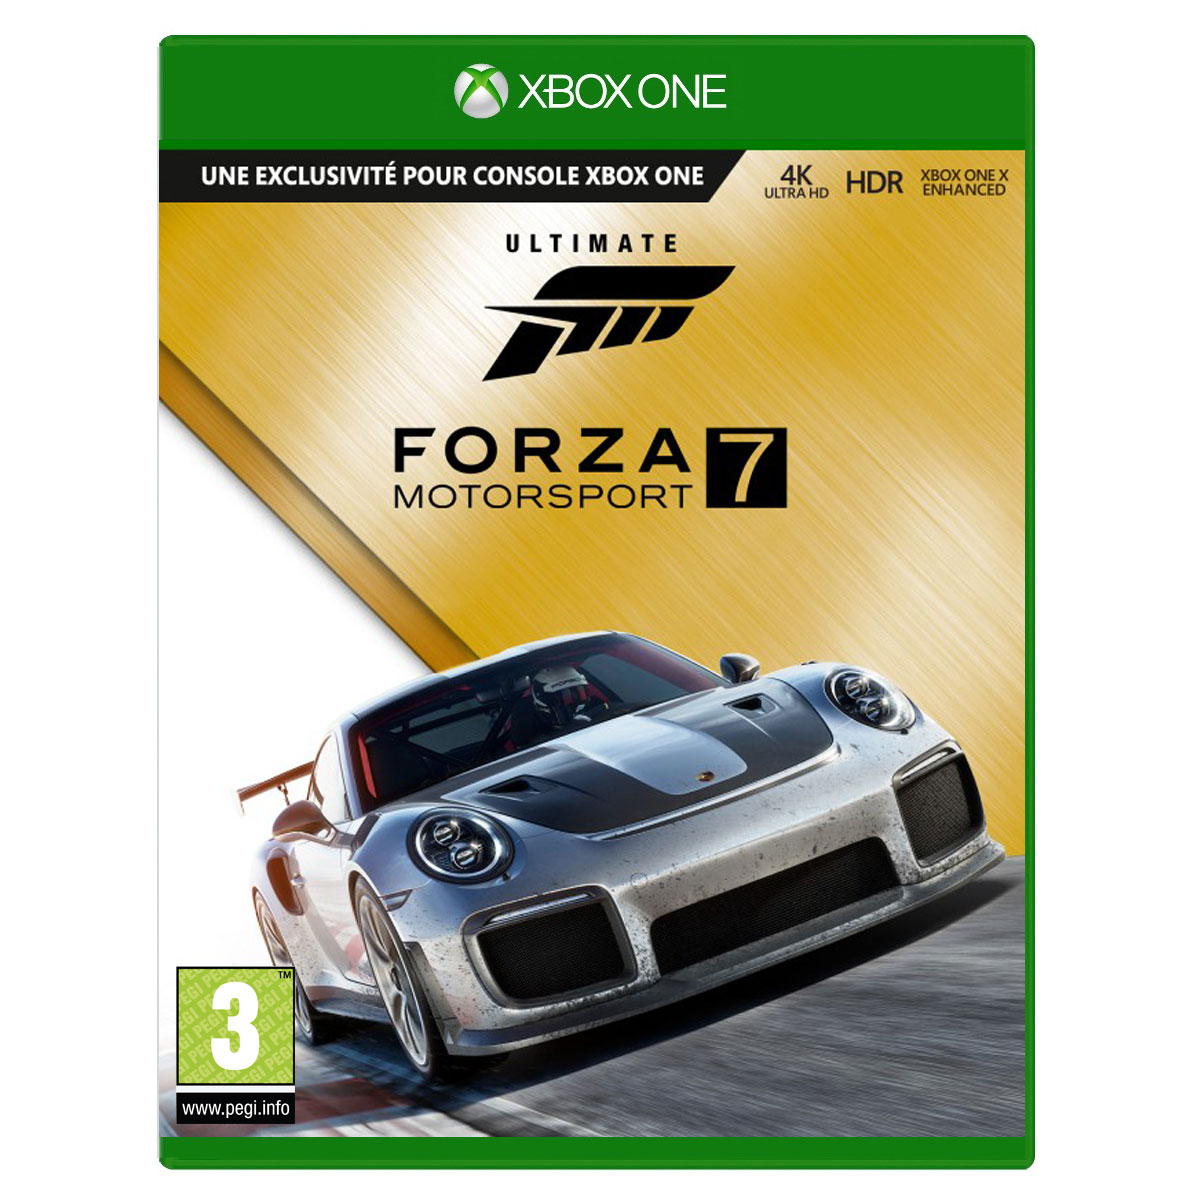 forza motorsport 7 ultimate edition xbox one jeux xbox one microsoft sur. Black Bedroom Furniture Sets. Home Design Ideas